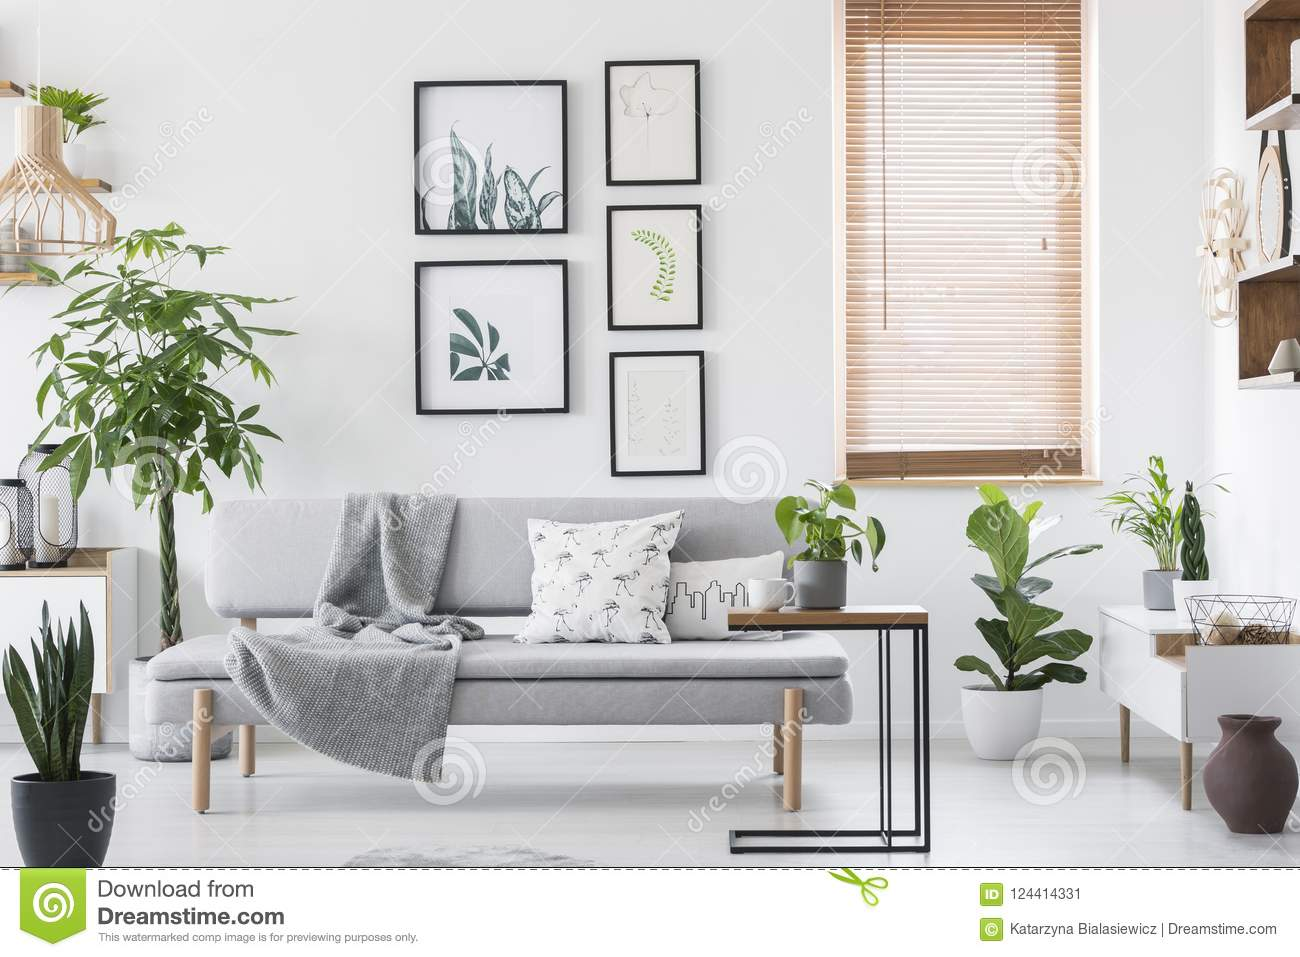 Gallery with plant posters hanging on wall in real photo of bright living room interior with window with wooden blinds and grey so